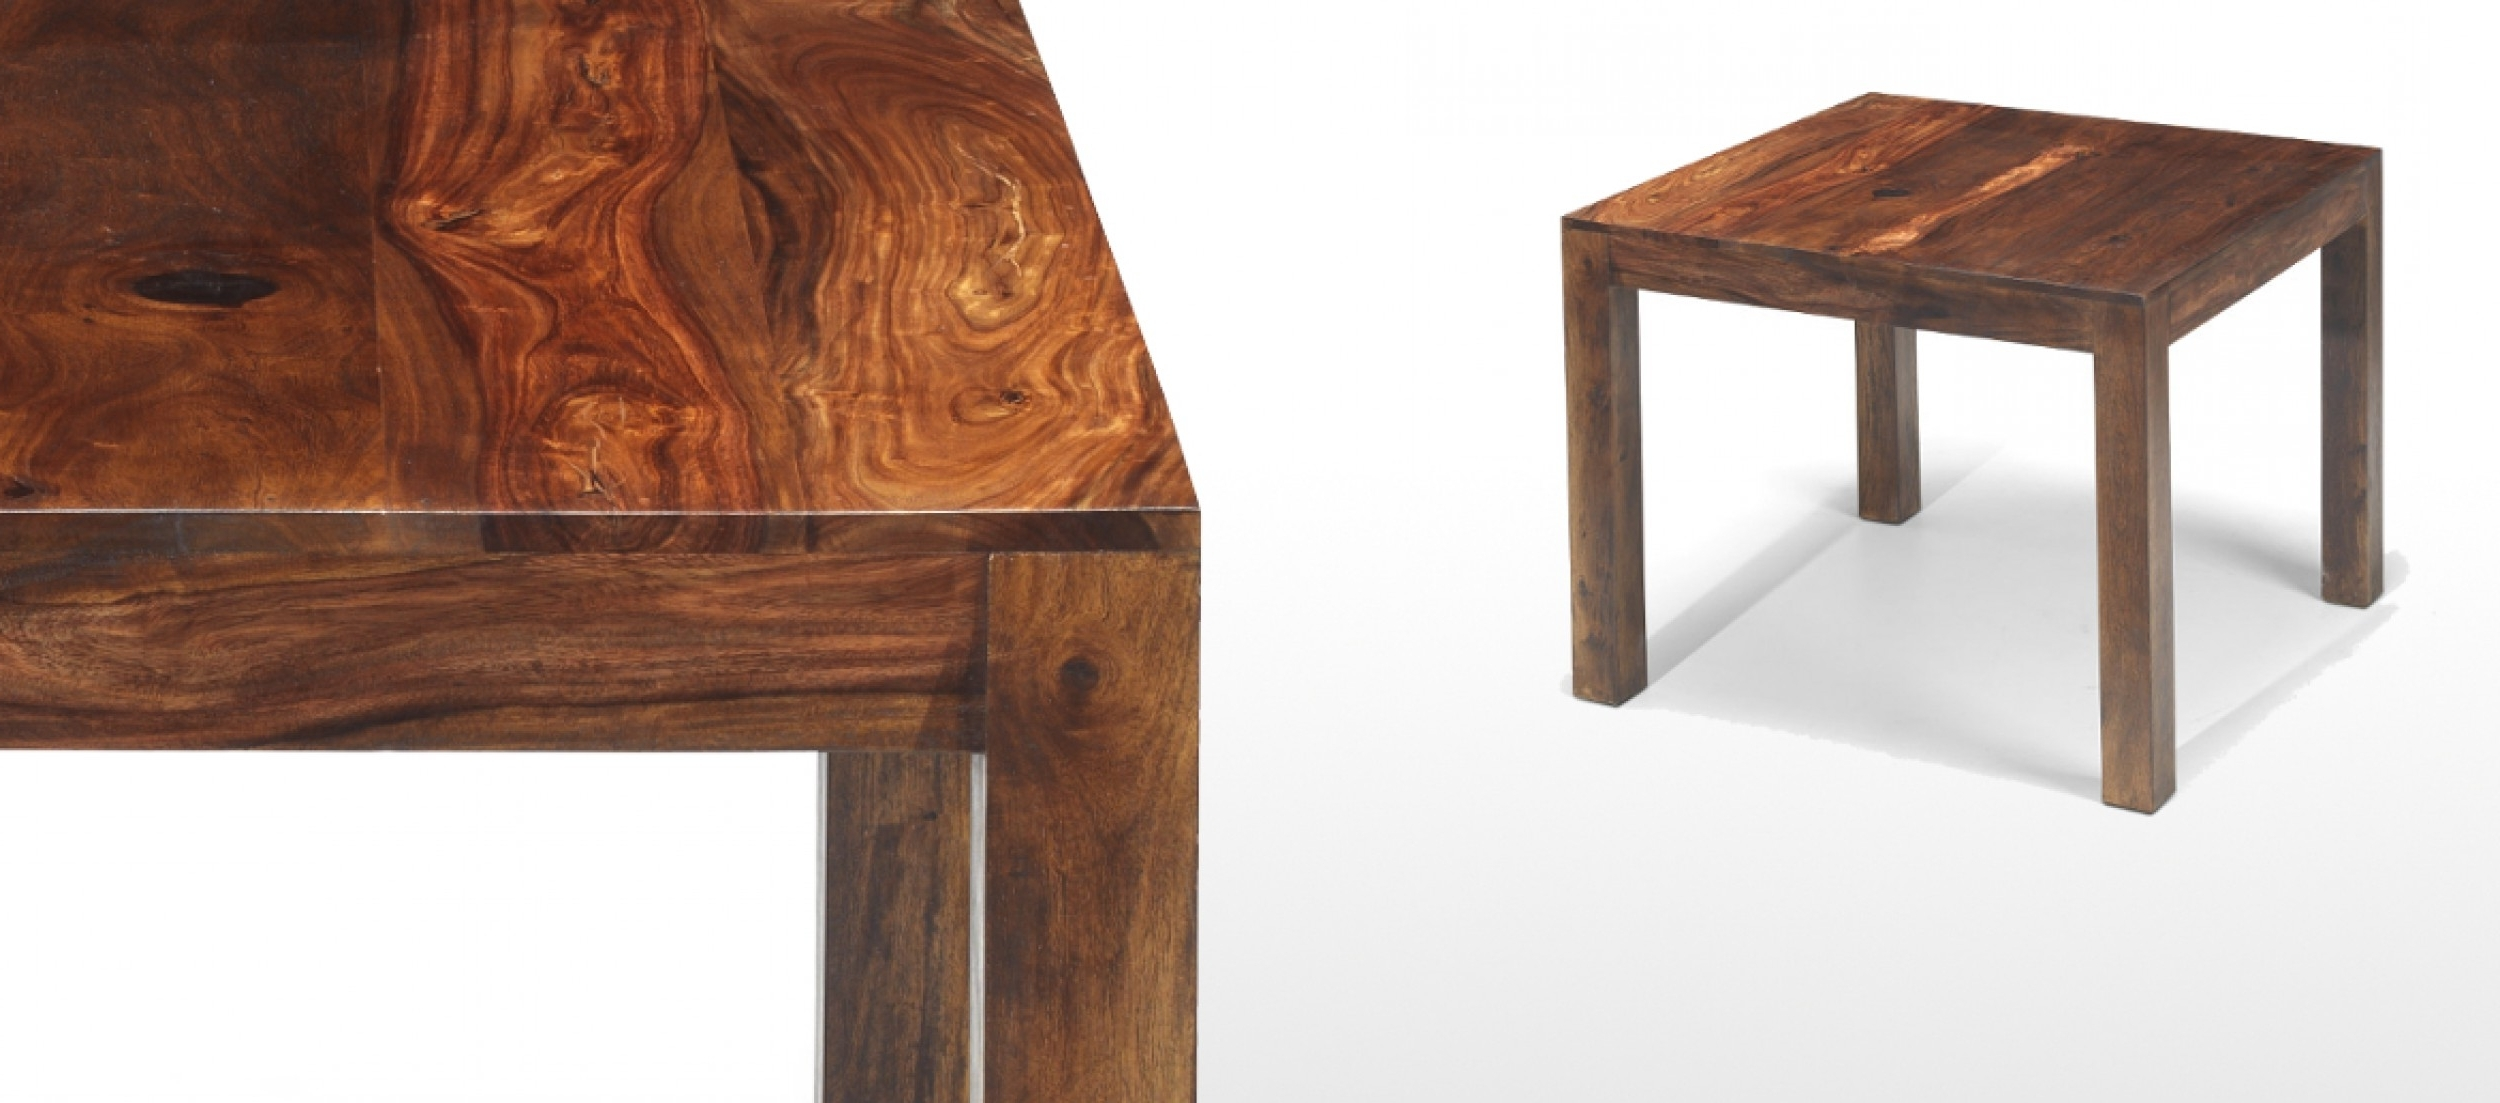 Quercus Living In Recent Sheesham Dining Tables (View 19 of 25)